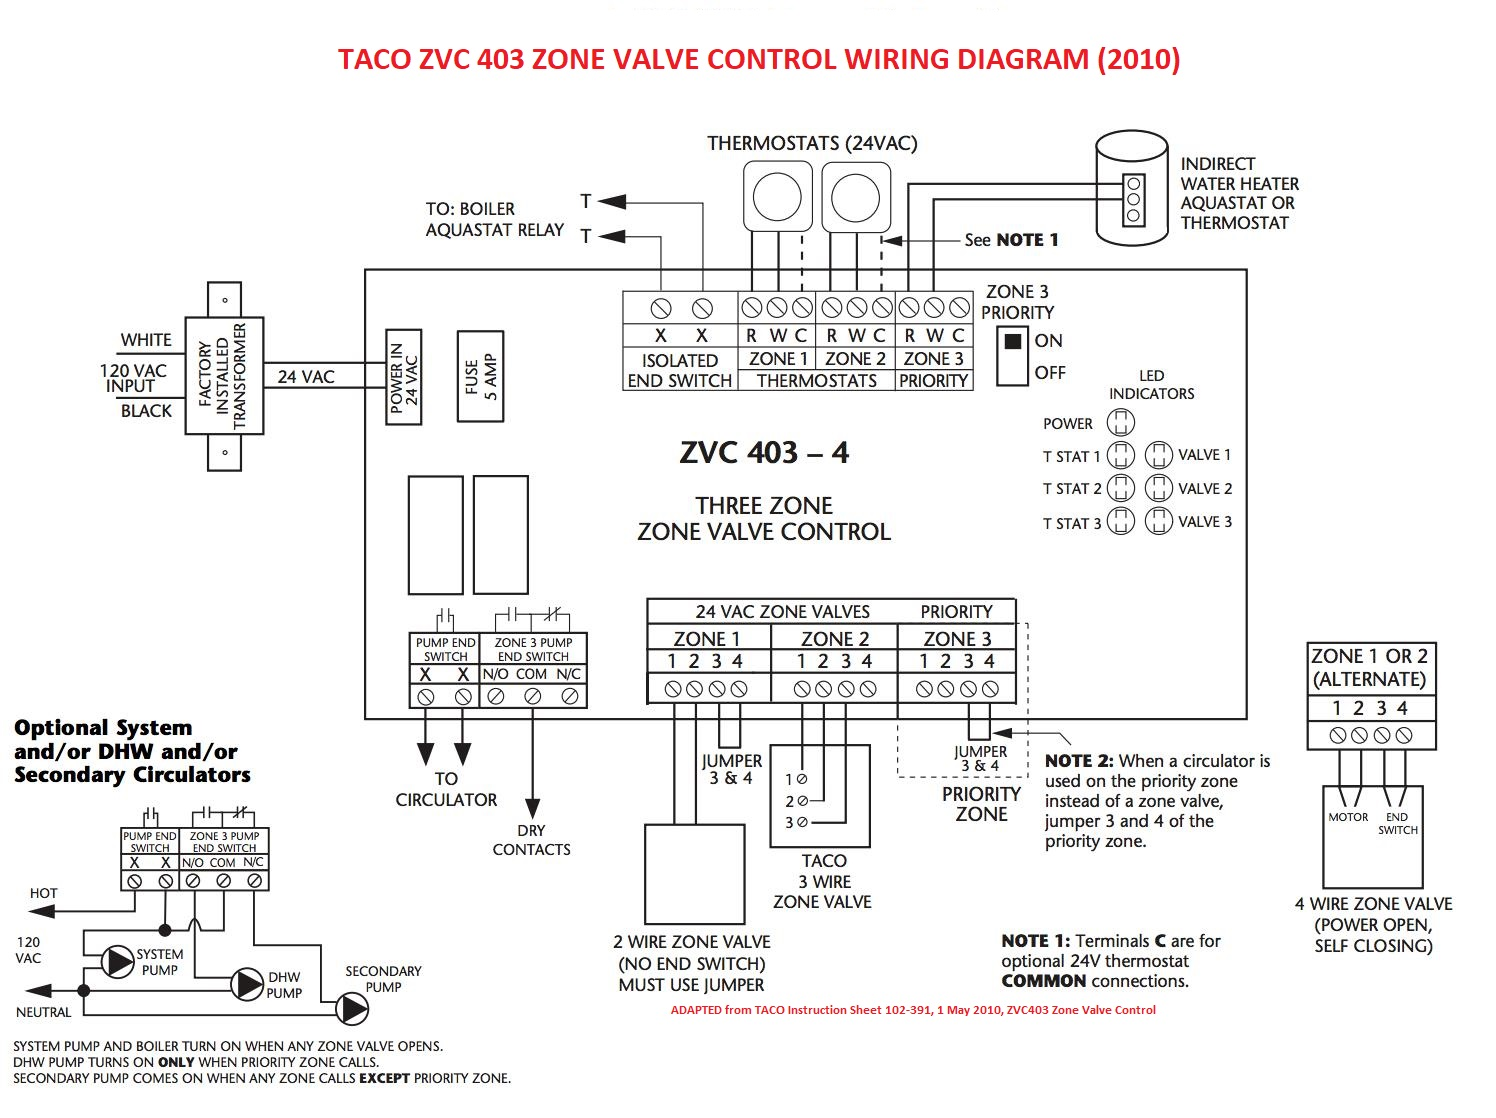 zone valve wiring installation instructions guide to heating rh inspectapedia com Taco Circulator Wiring Taco Circulator Wiring